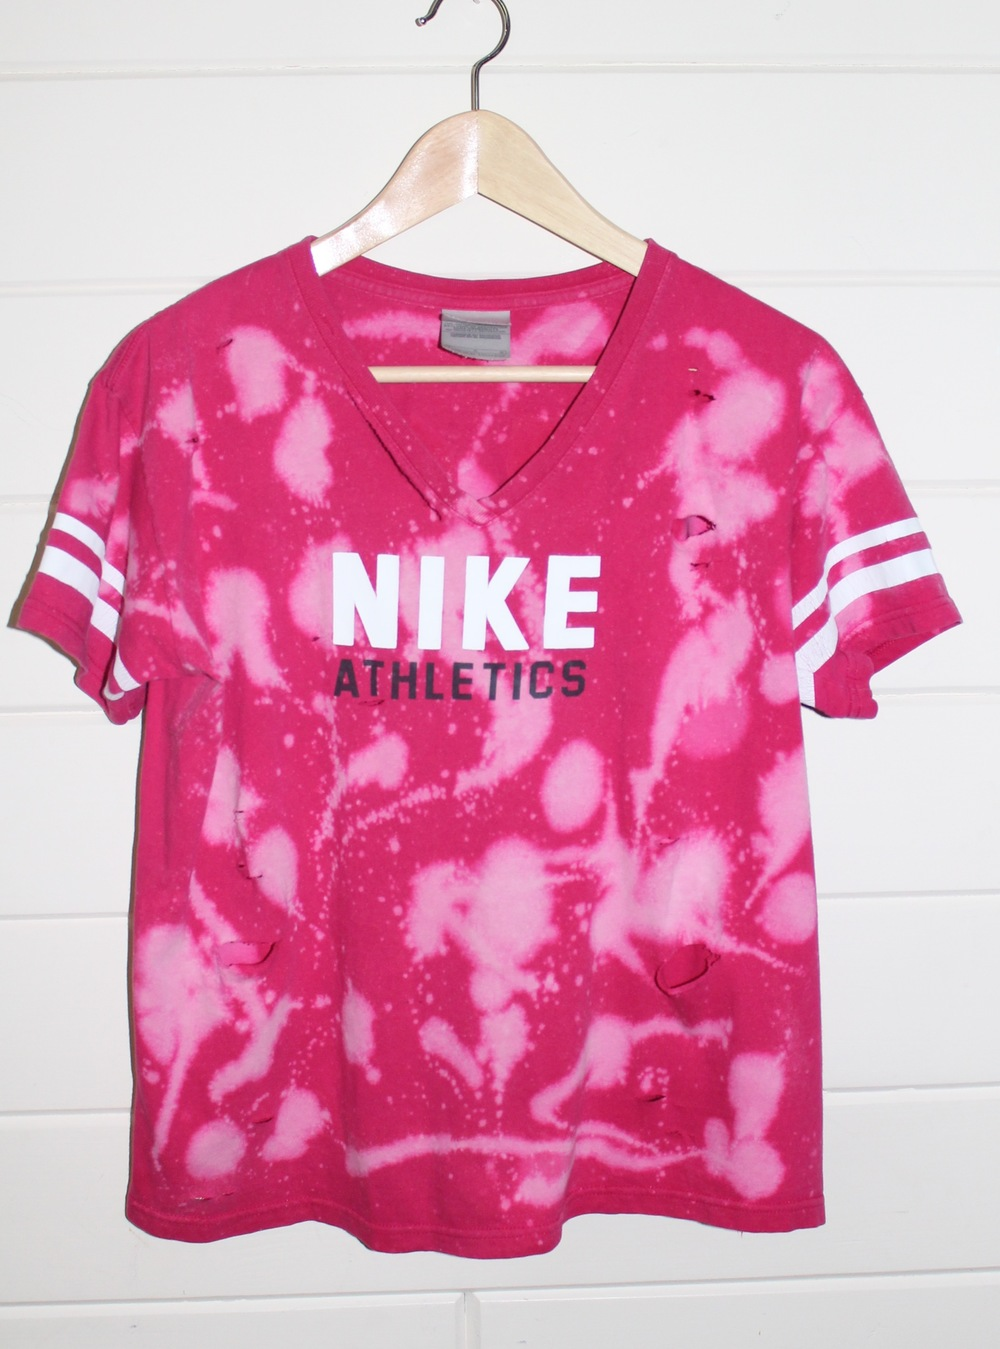 Bleached and Destroyed Nike Tee-SOLD OUT